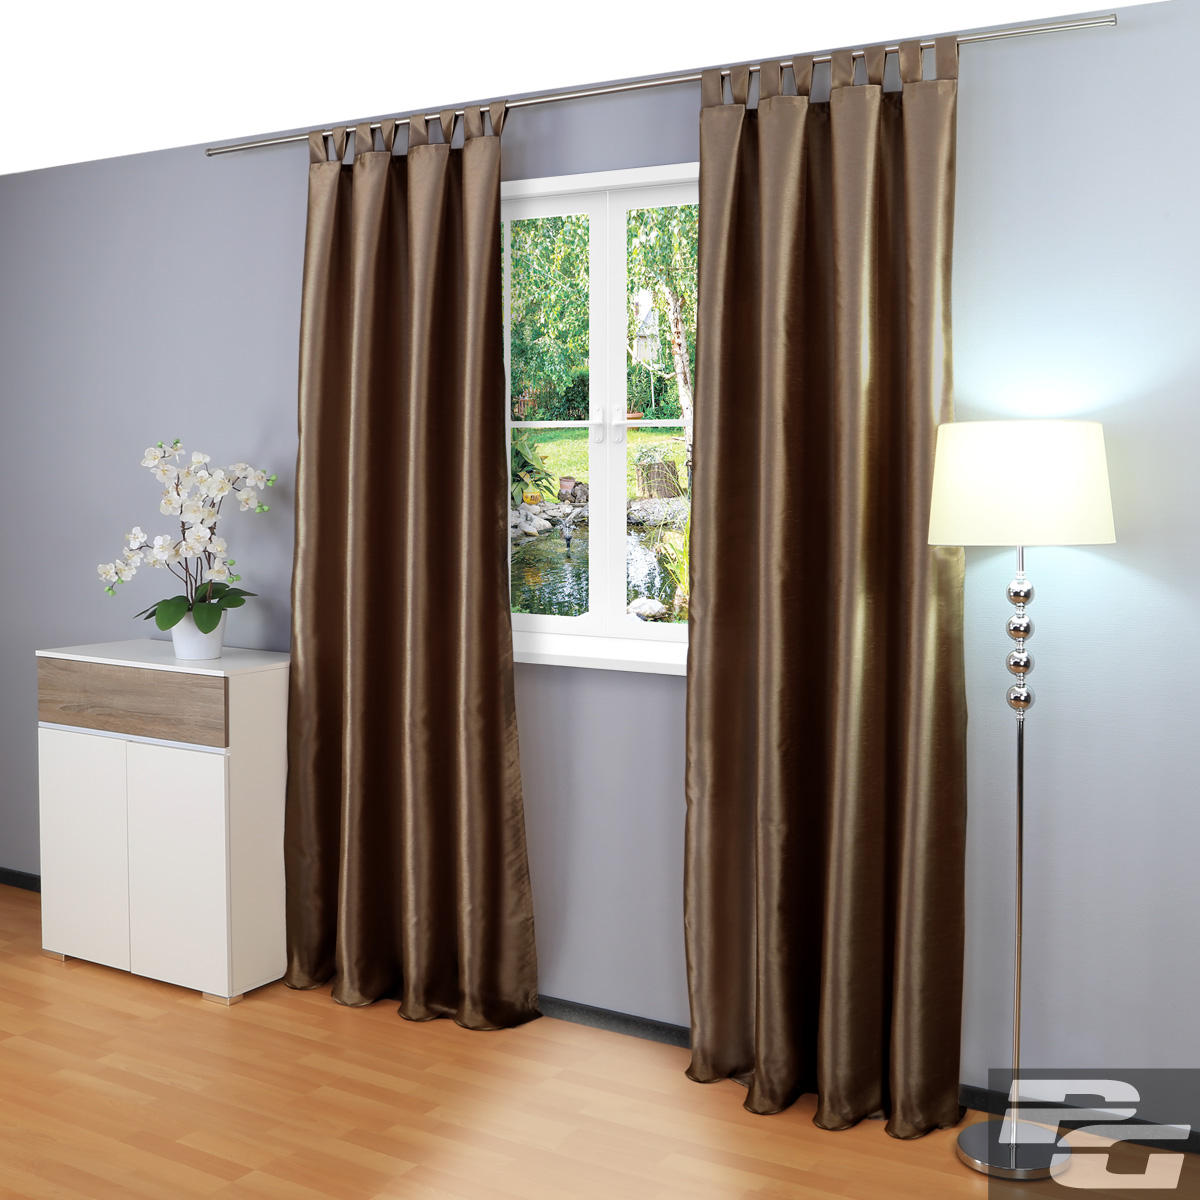 rollos f r doppelfenster braun beige innenarchitektur. Black Bedroom Furniture Sets. Home Design Ideas